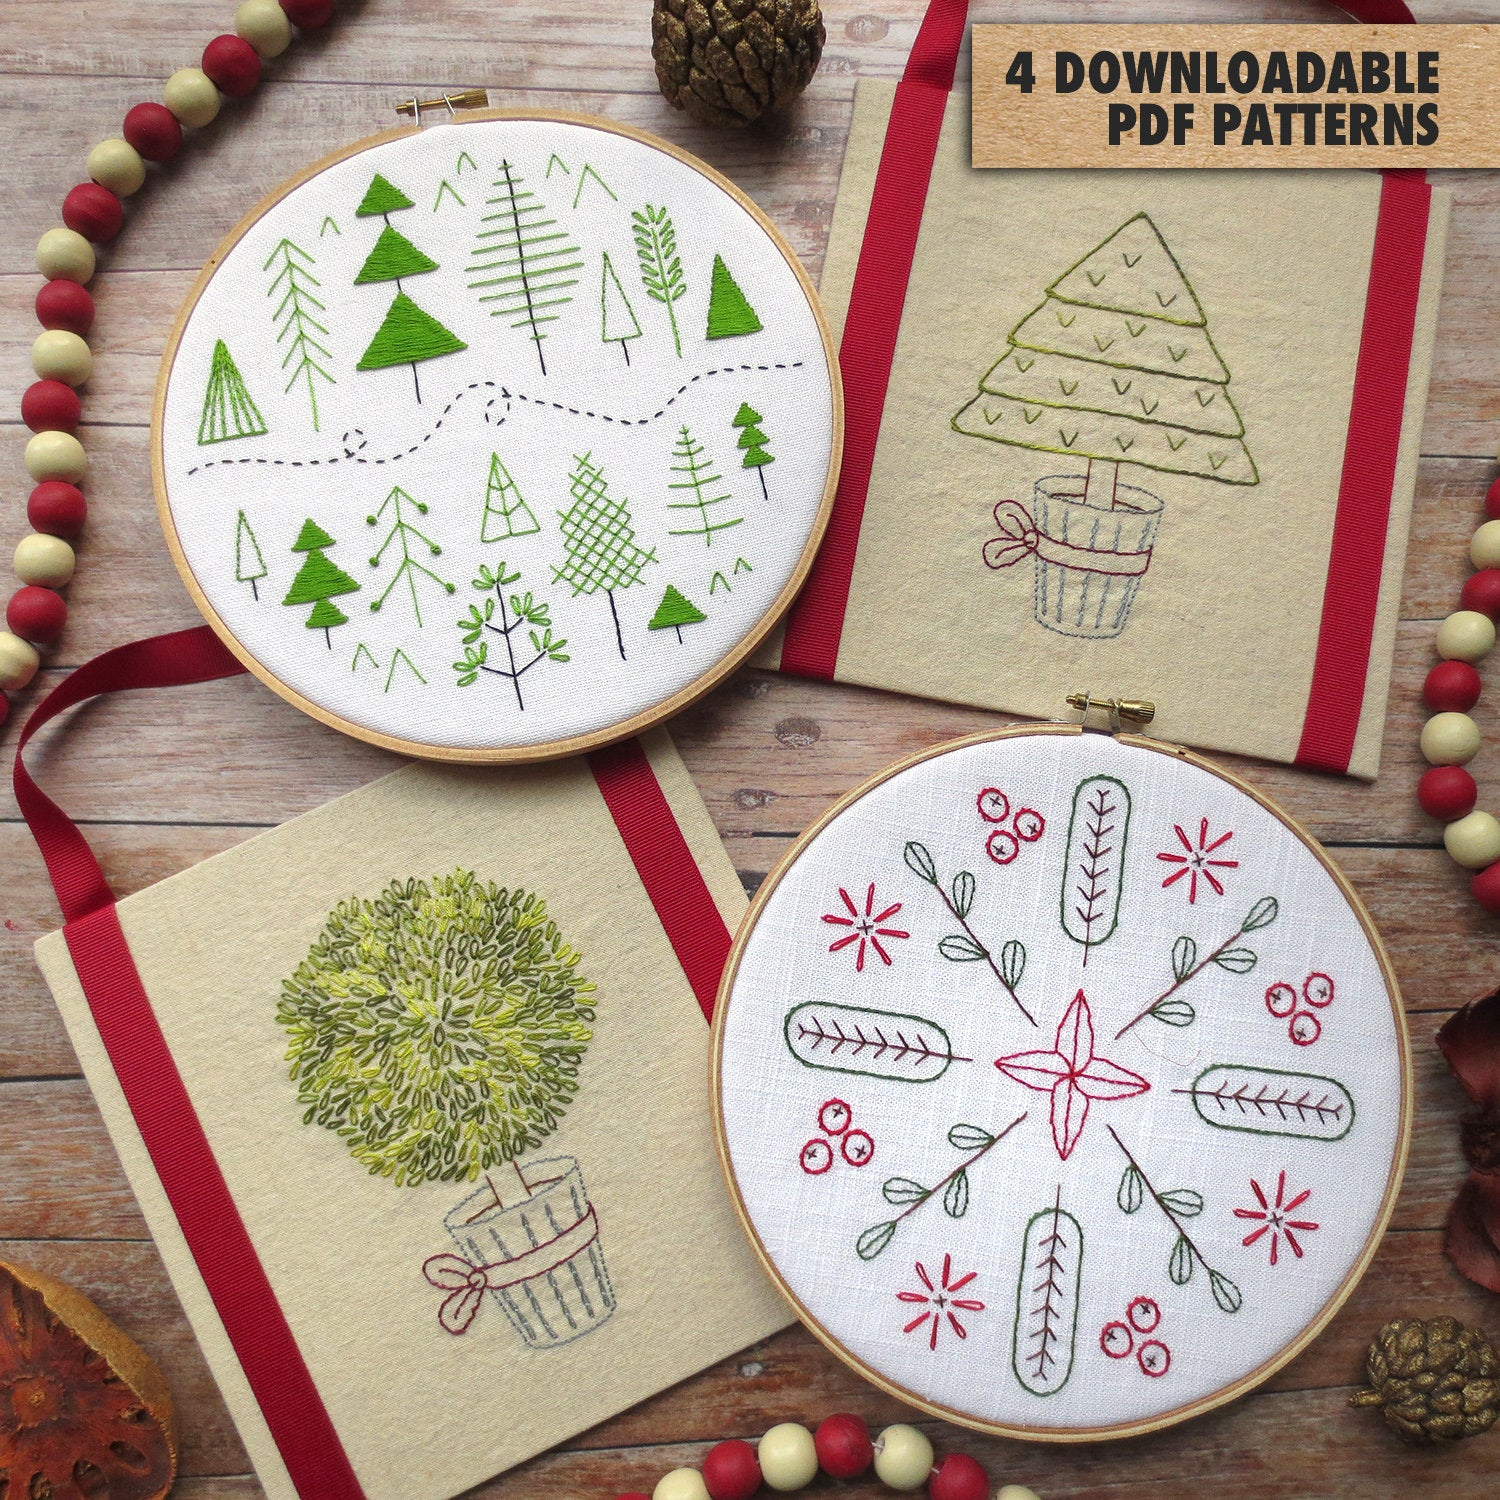 Christmas Hand Embroidery Patterns 4 Hand Embroidery Patterns Christmas Holiday Embroidery Winter Decor Botanical Embroidery Pattern Beginner Embroidery Christmas Crafts